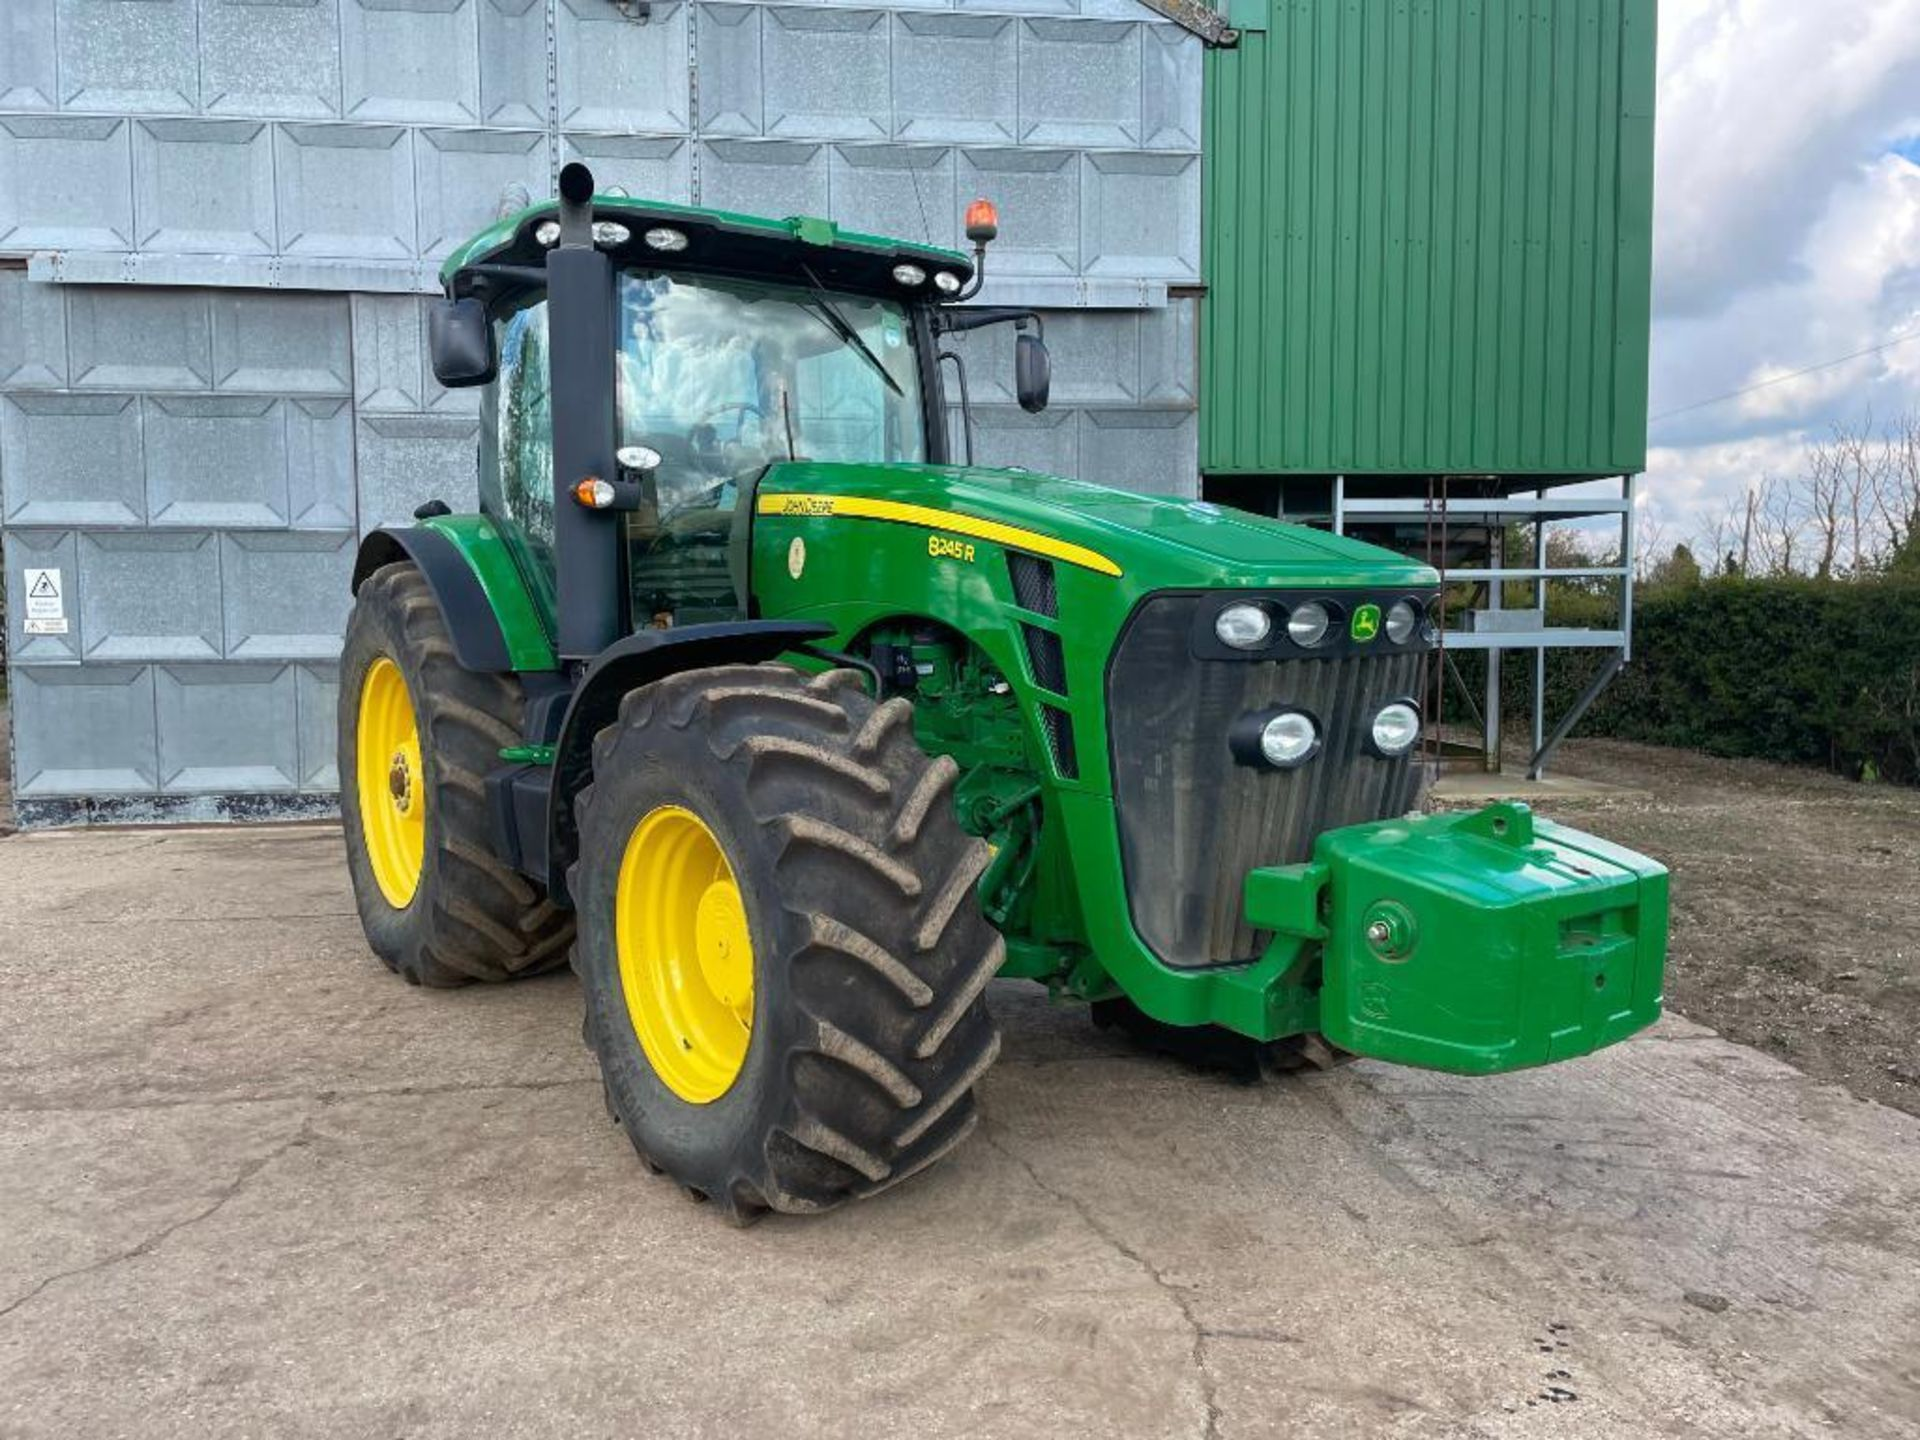 2011 John Deere 8245R 40kph Powershift with 4 electric spools, TLS front suspension and 900kg front - Image 12 of 18